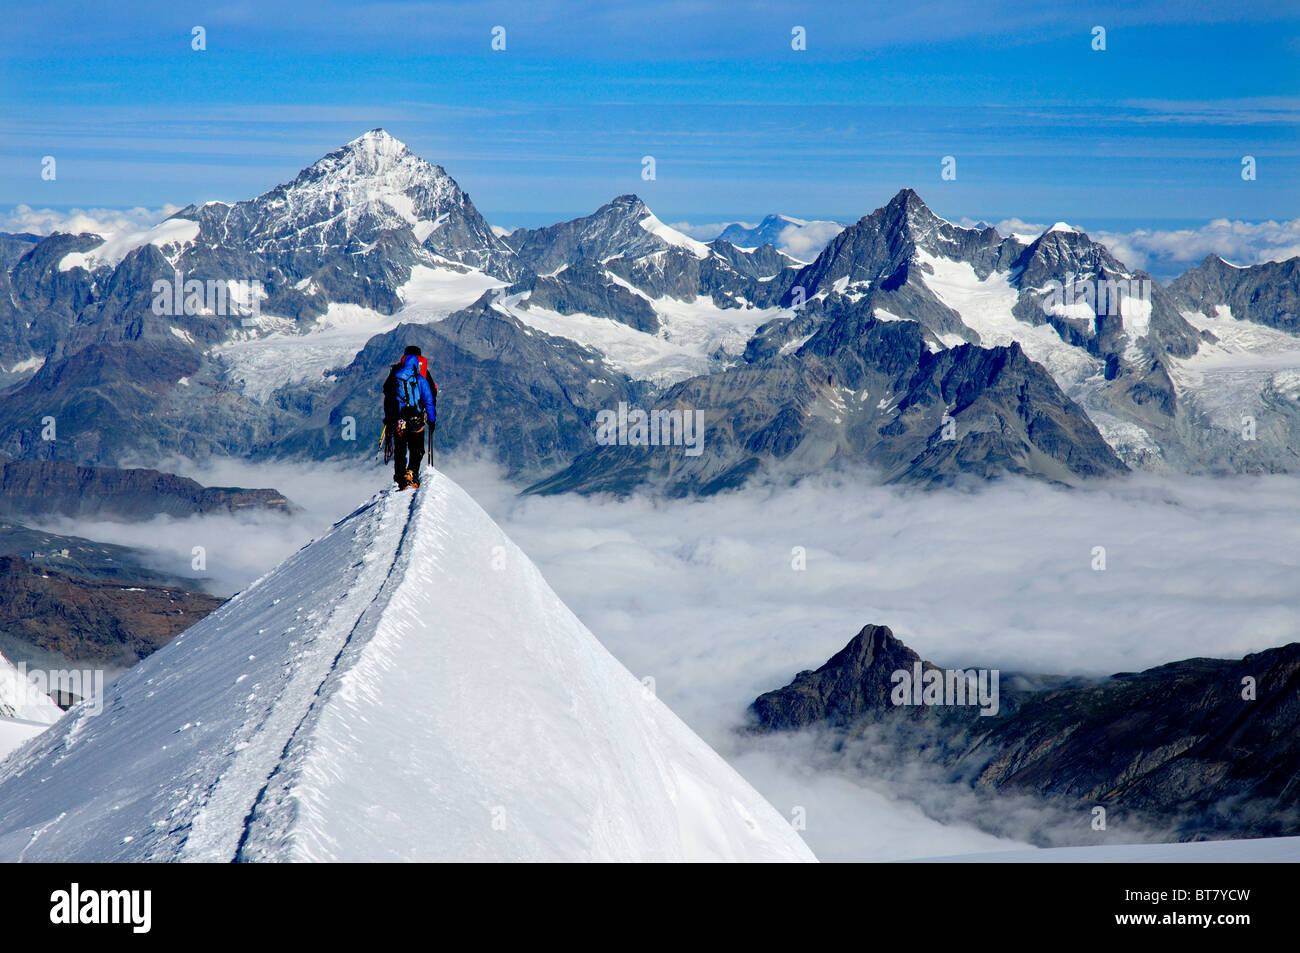 A team of climbers on the narrow Parrotspitze on Monte Rosa in Switzerland - Stock Image